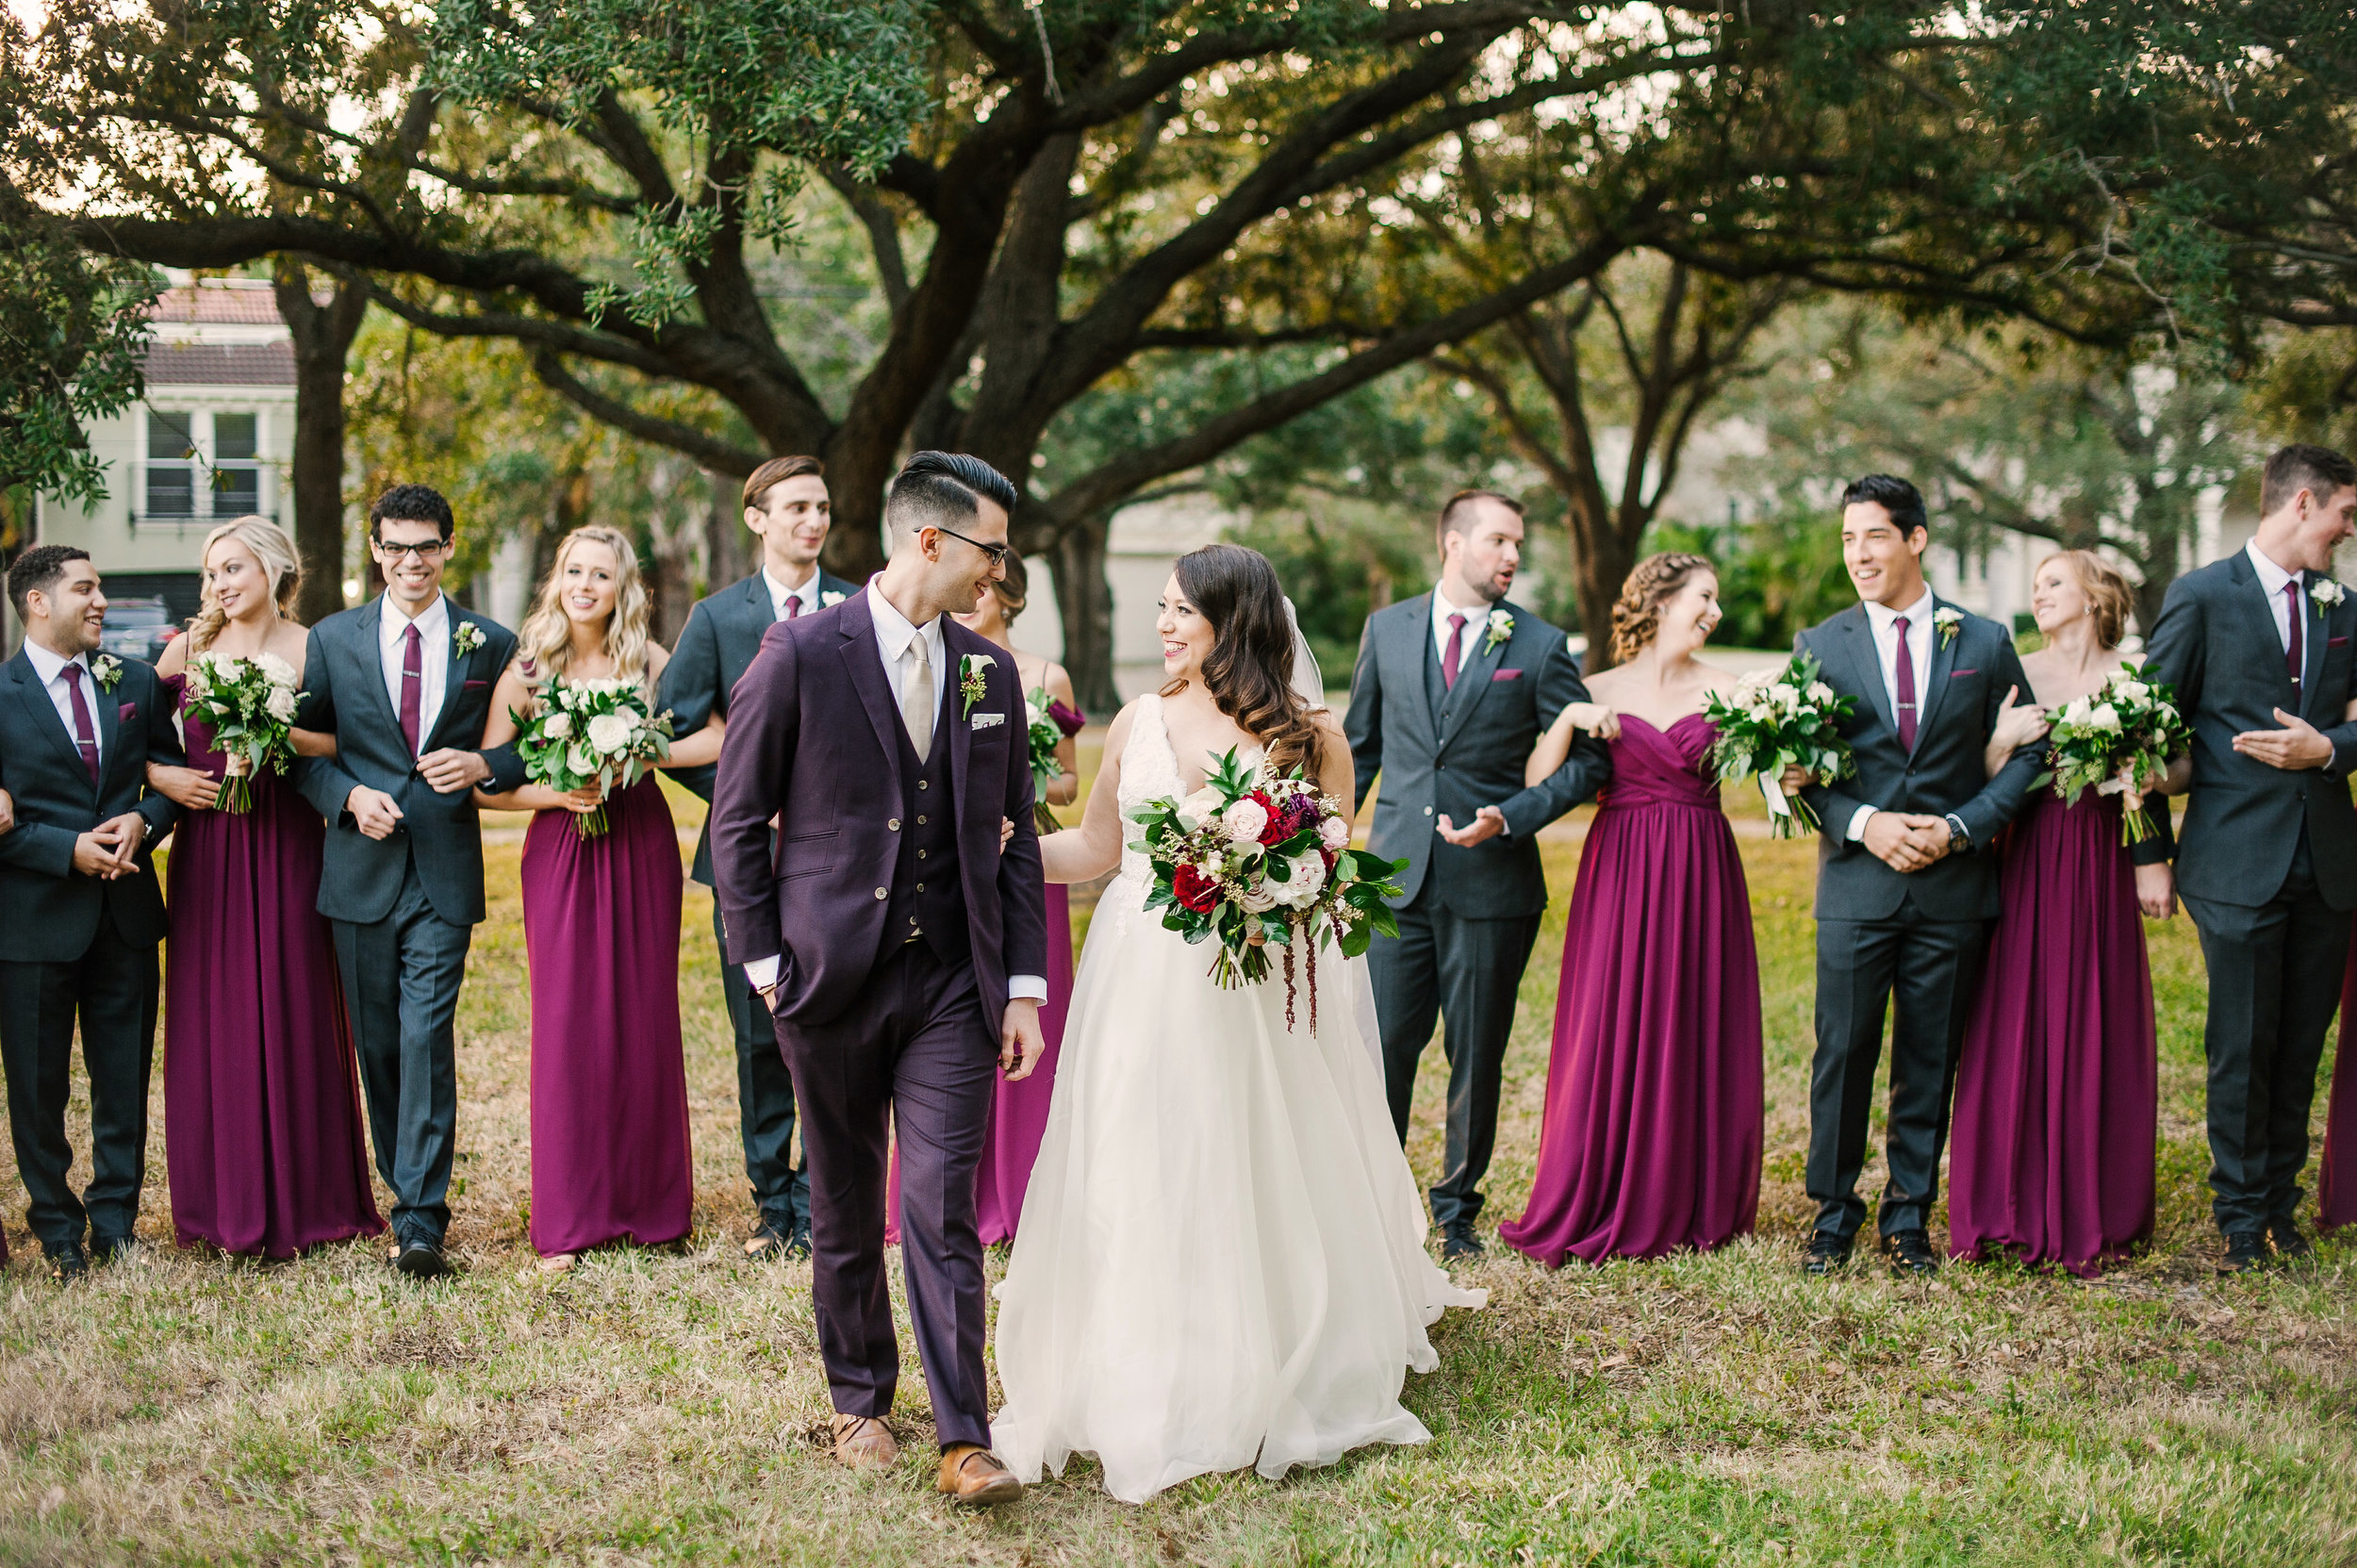 The bride and groom complimented by their stylish wedding party in grey and cranberry tones.